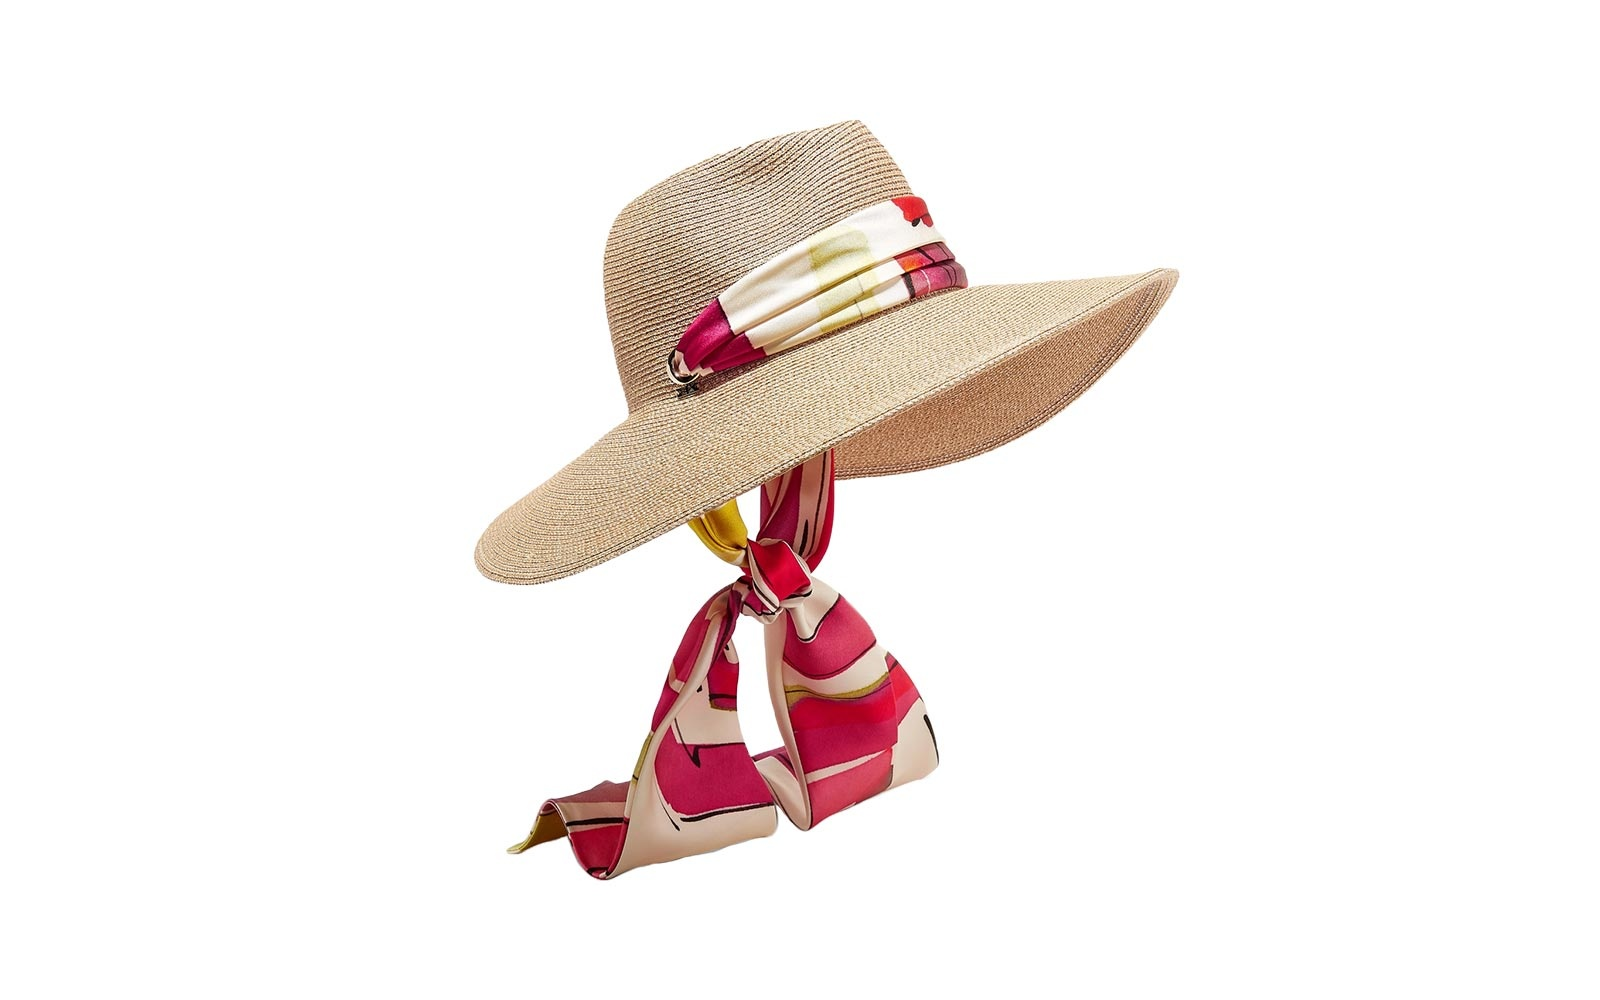 d07a5dbafa5a8 7 Packable Sun Hats That Won t Get Crushed in Your Suitcase